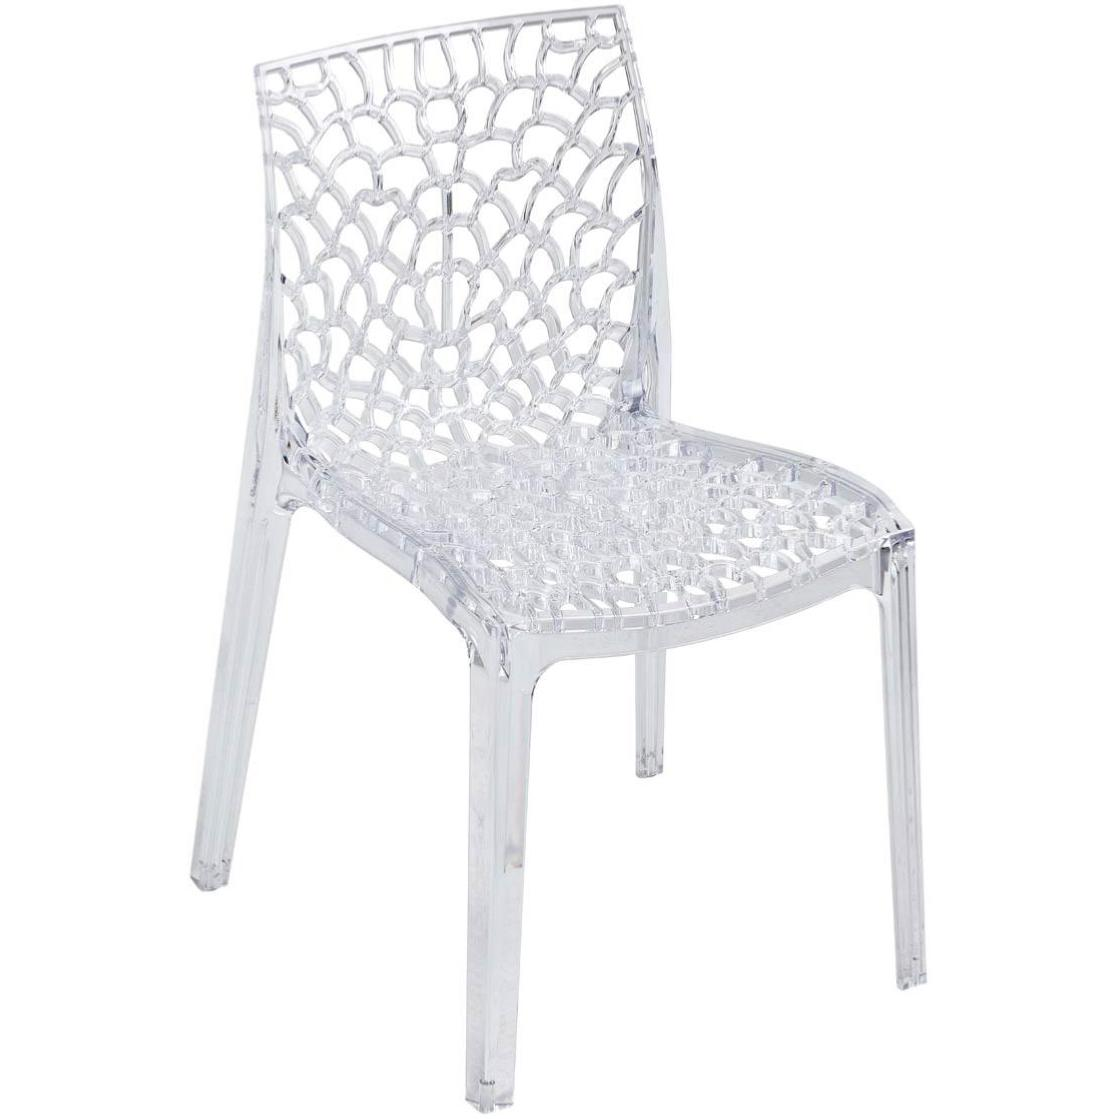 crocy chaise empilable en polycarbonate ajouree transparente